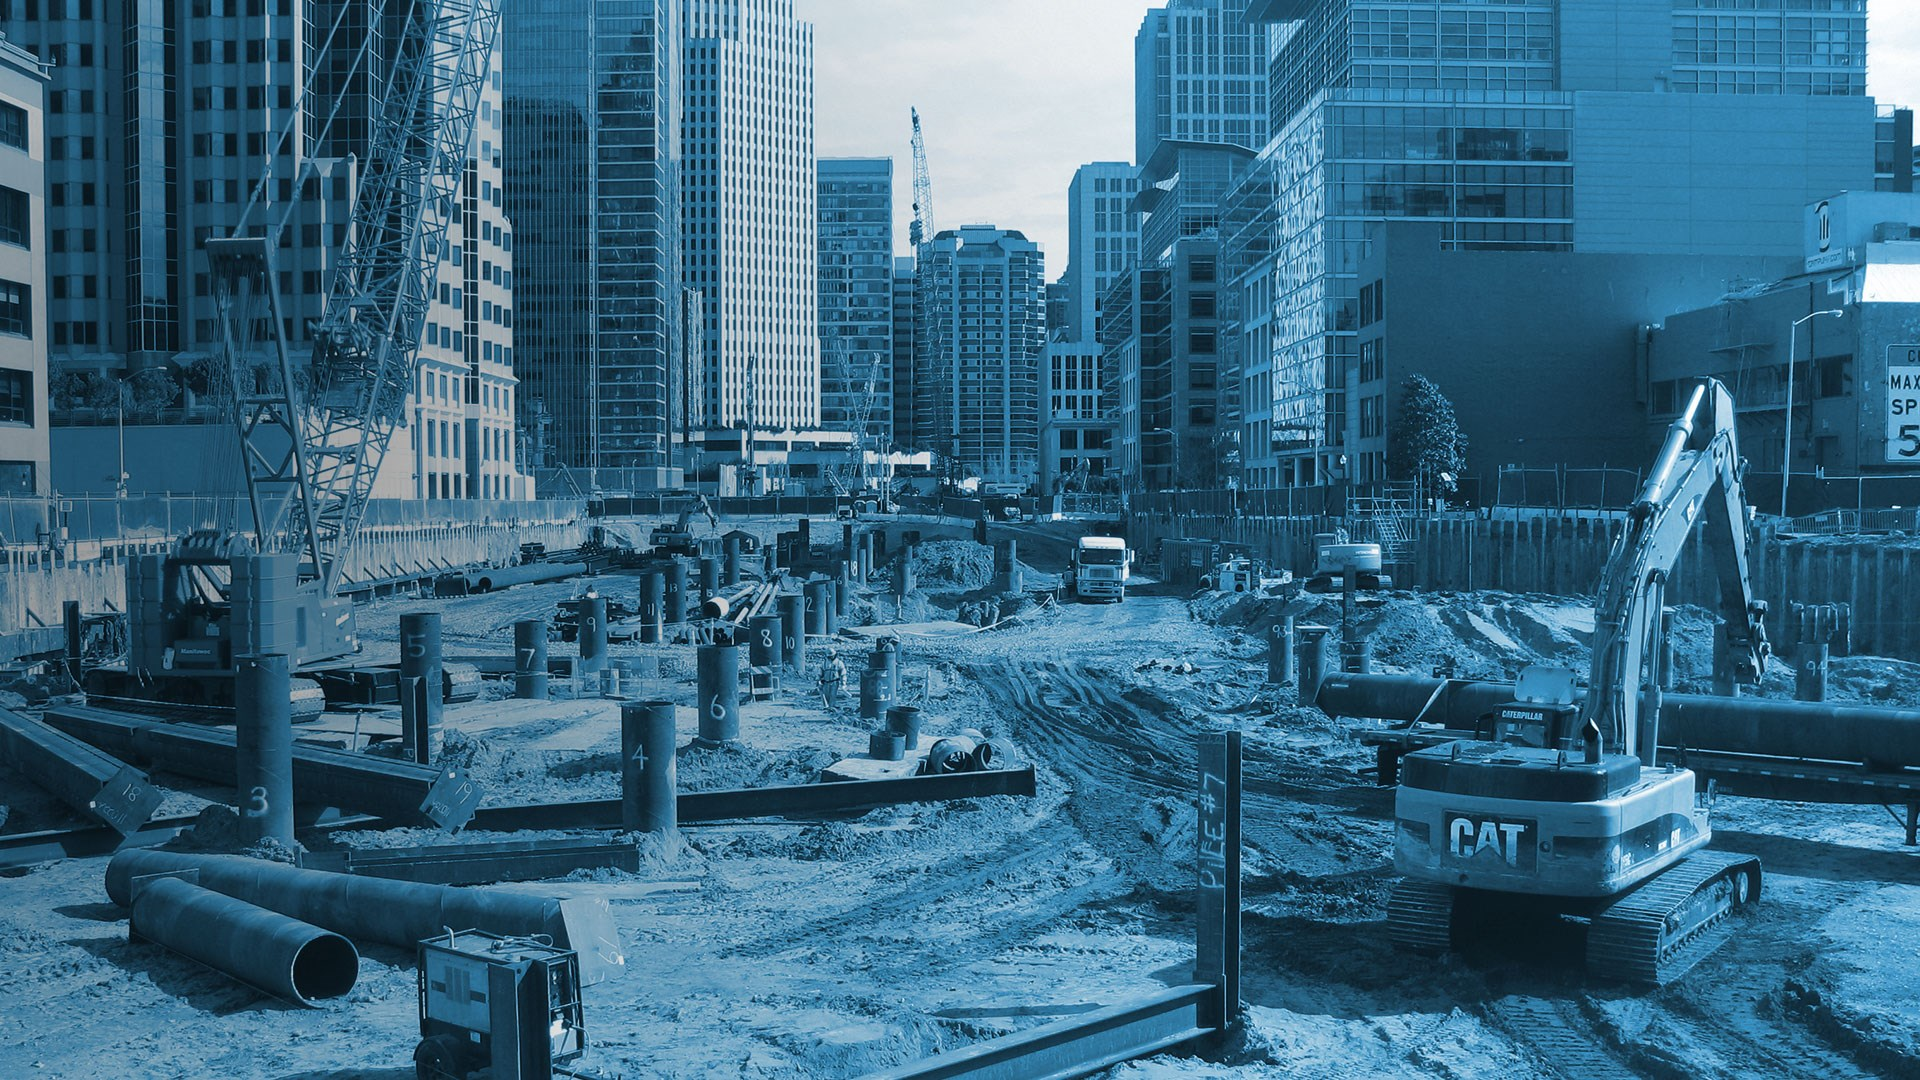 3-infrastructure_transbay